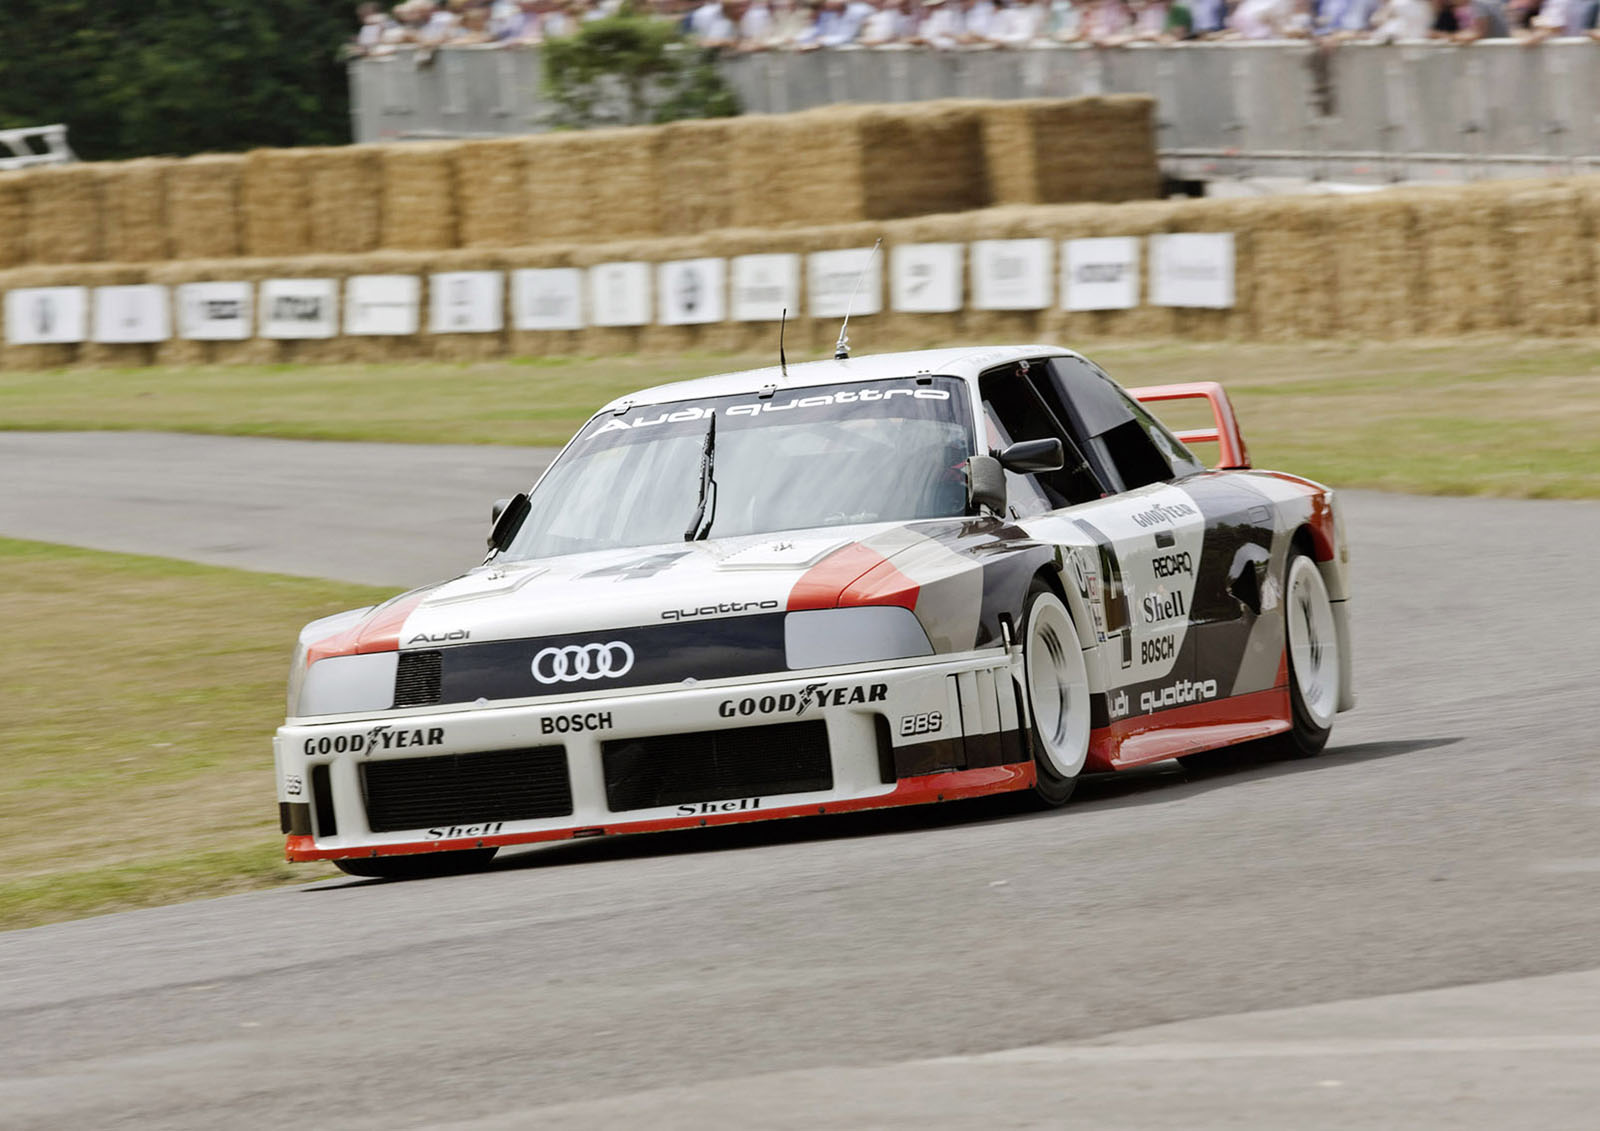 1989: most powerful five-cylinder works engine in motorsport:At the 1989 IMSA GTO in the USA, the Audi 90 quattro competes in its races with the most powerful fivecylinder works engine. The turbocharged aluminum engine is a 2.2-liter high-performance unit specially designed for racing. It develops 530 kW (720 hp) at 7,500 revolutions per minute and delivers 720 newton meters (531.04 lb-ft) of torque at 6,000 rpm. Overall, the Audi 90 quattro IMSA GTO wins seven races in the American touring car series in the 1989 season.